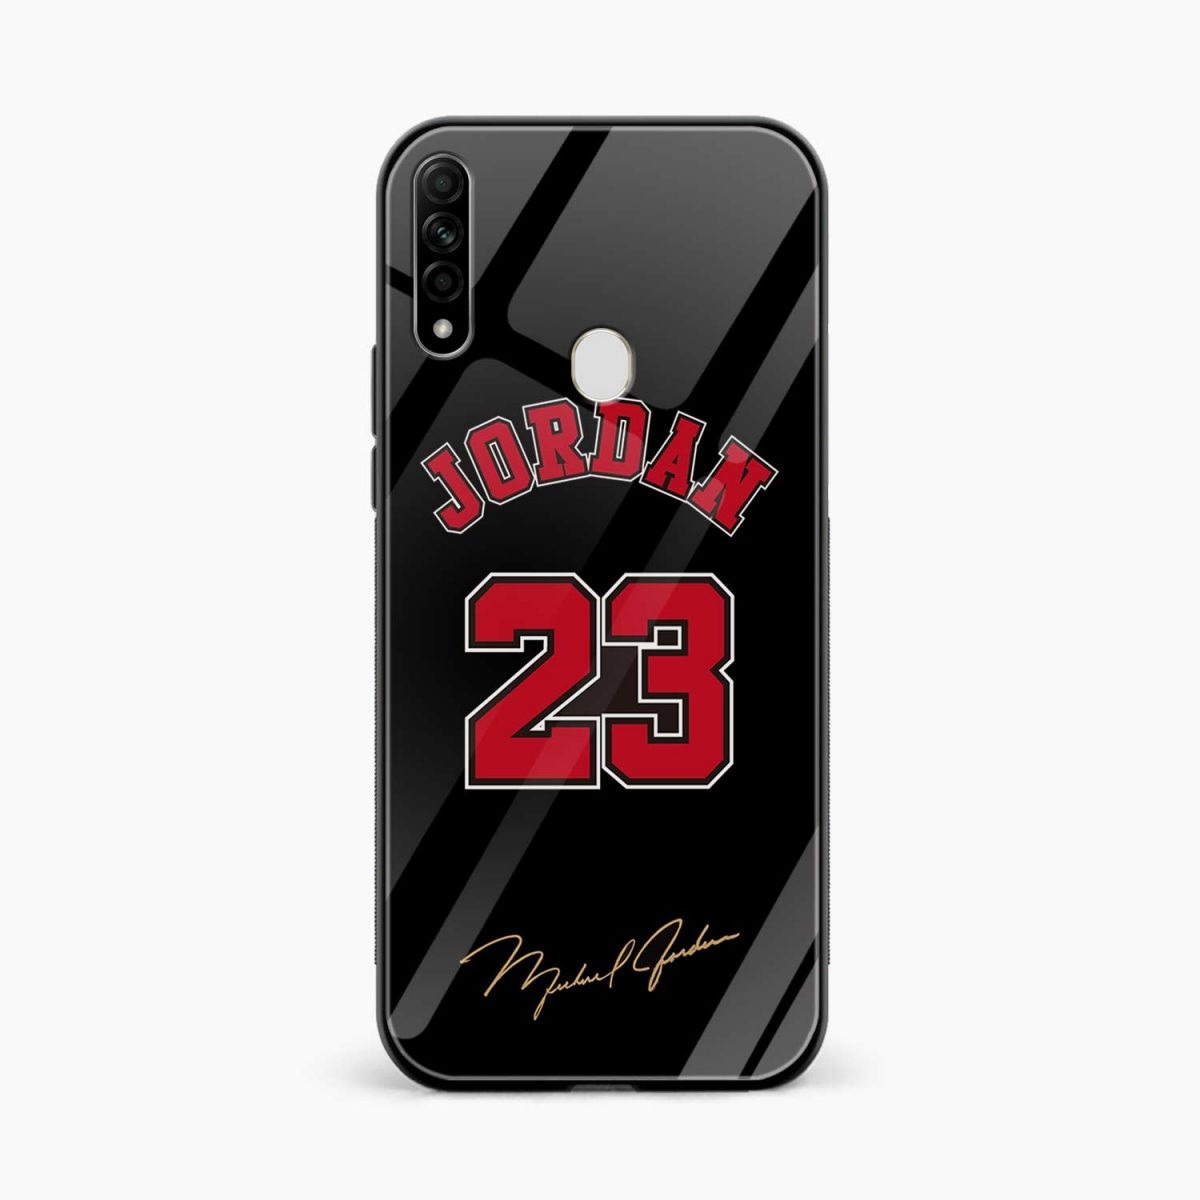 jordan 23 front view oppo a31 back cover